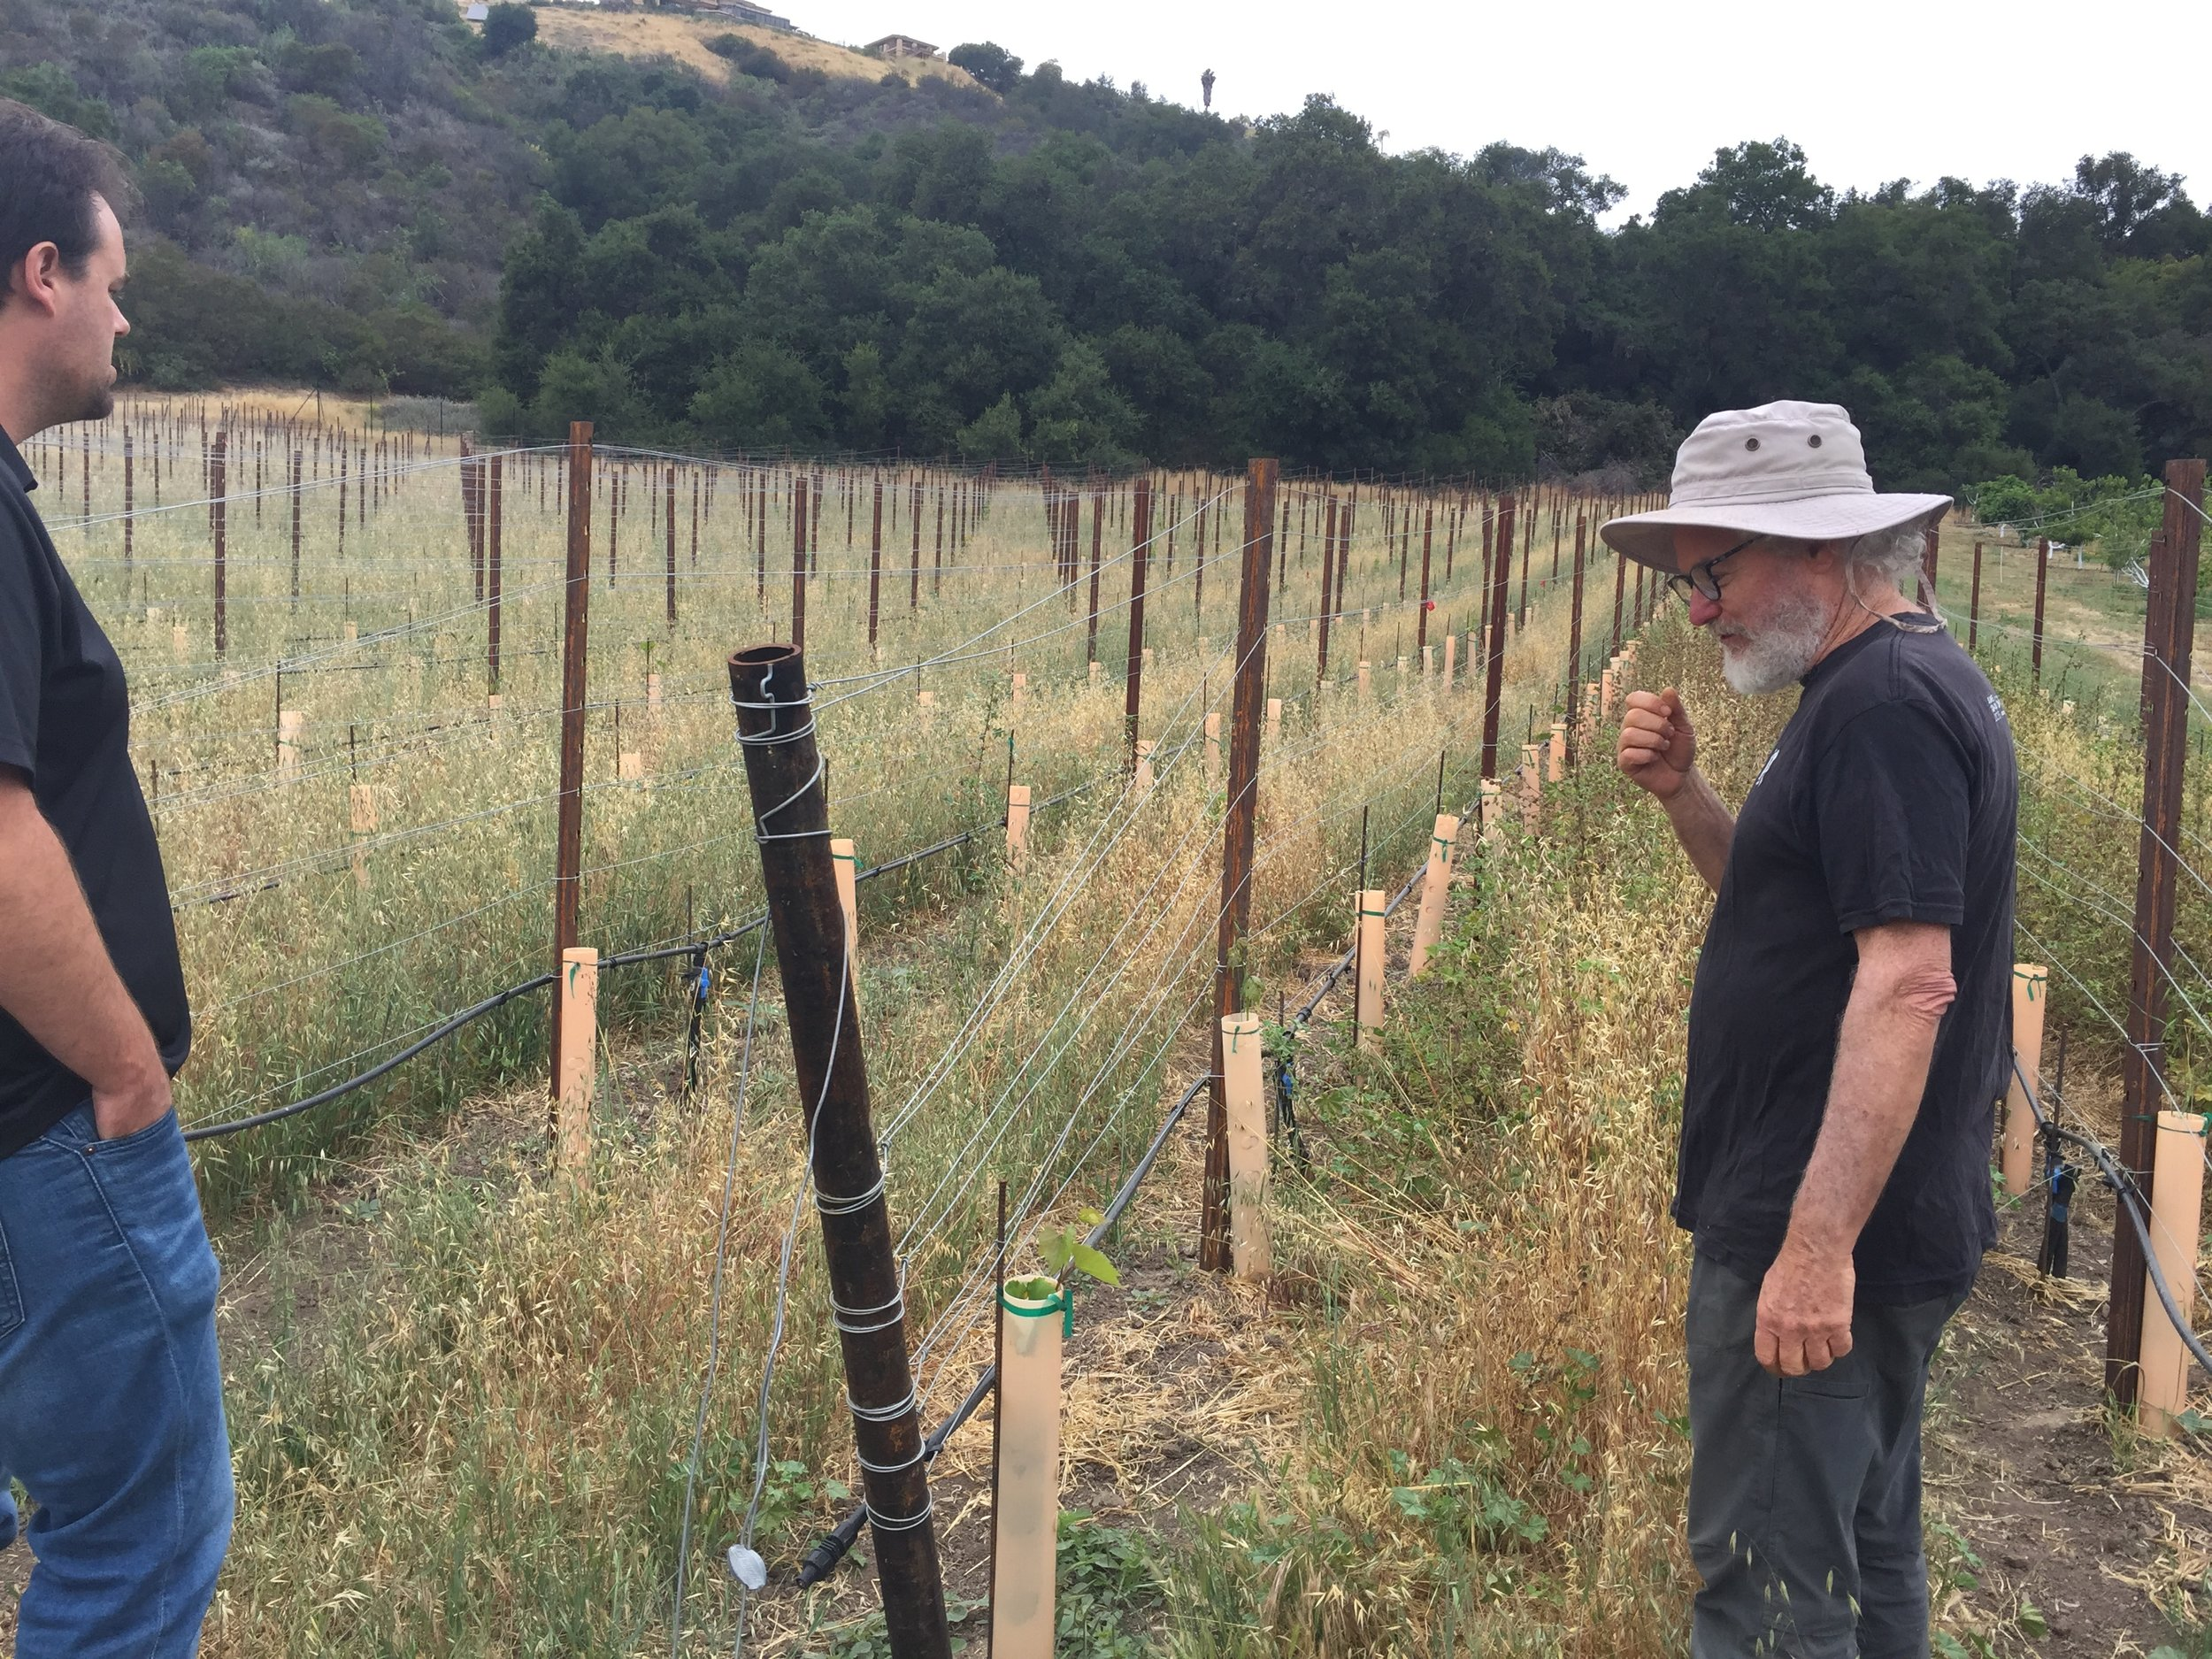 Tolmach's latest research project - a test vineyard with resistance to Pierce's Disease